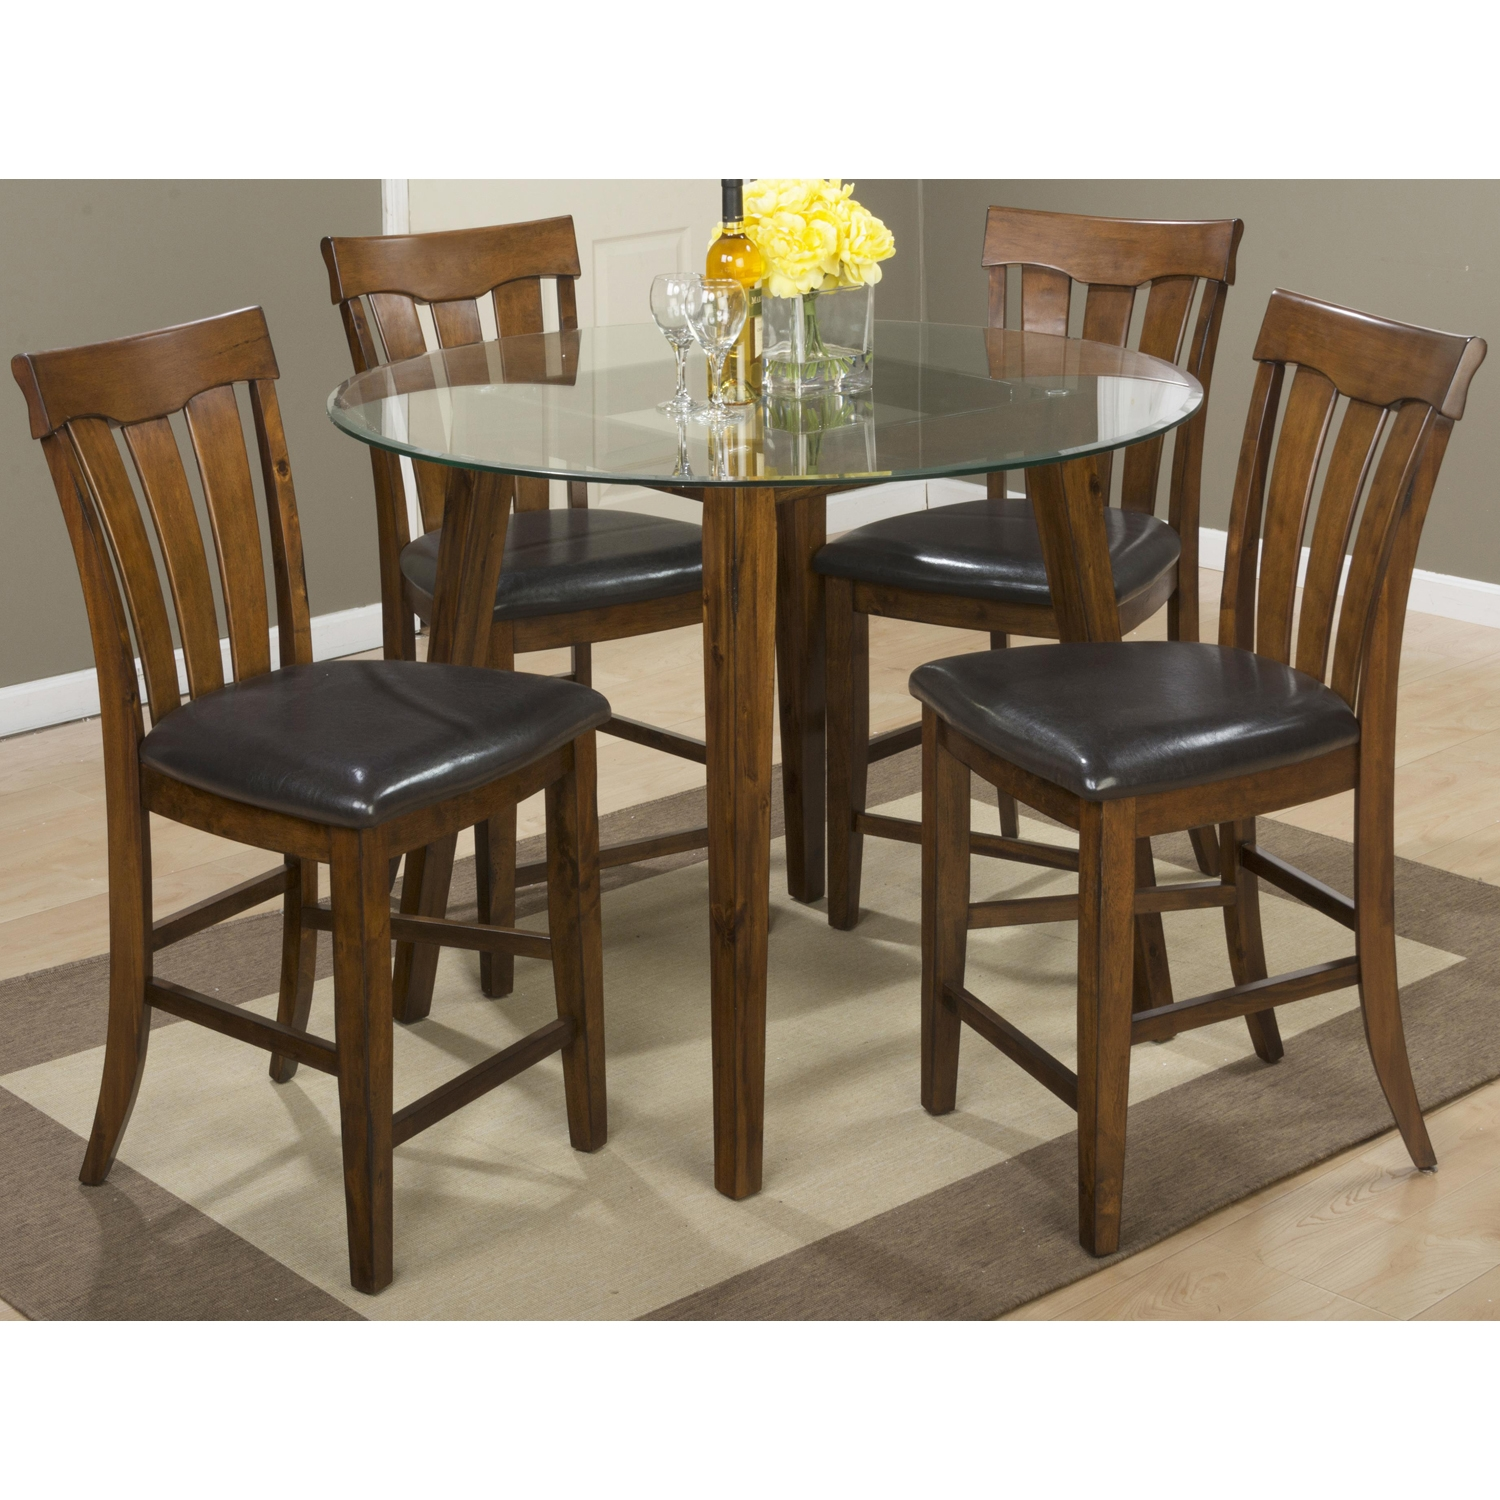 Plantation 5 Pieces Counter Height Dining Set - Glass Top - JOFR-505-50BG48RDKT-BS423KD-SET